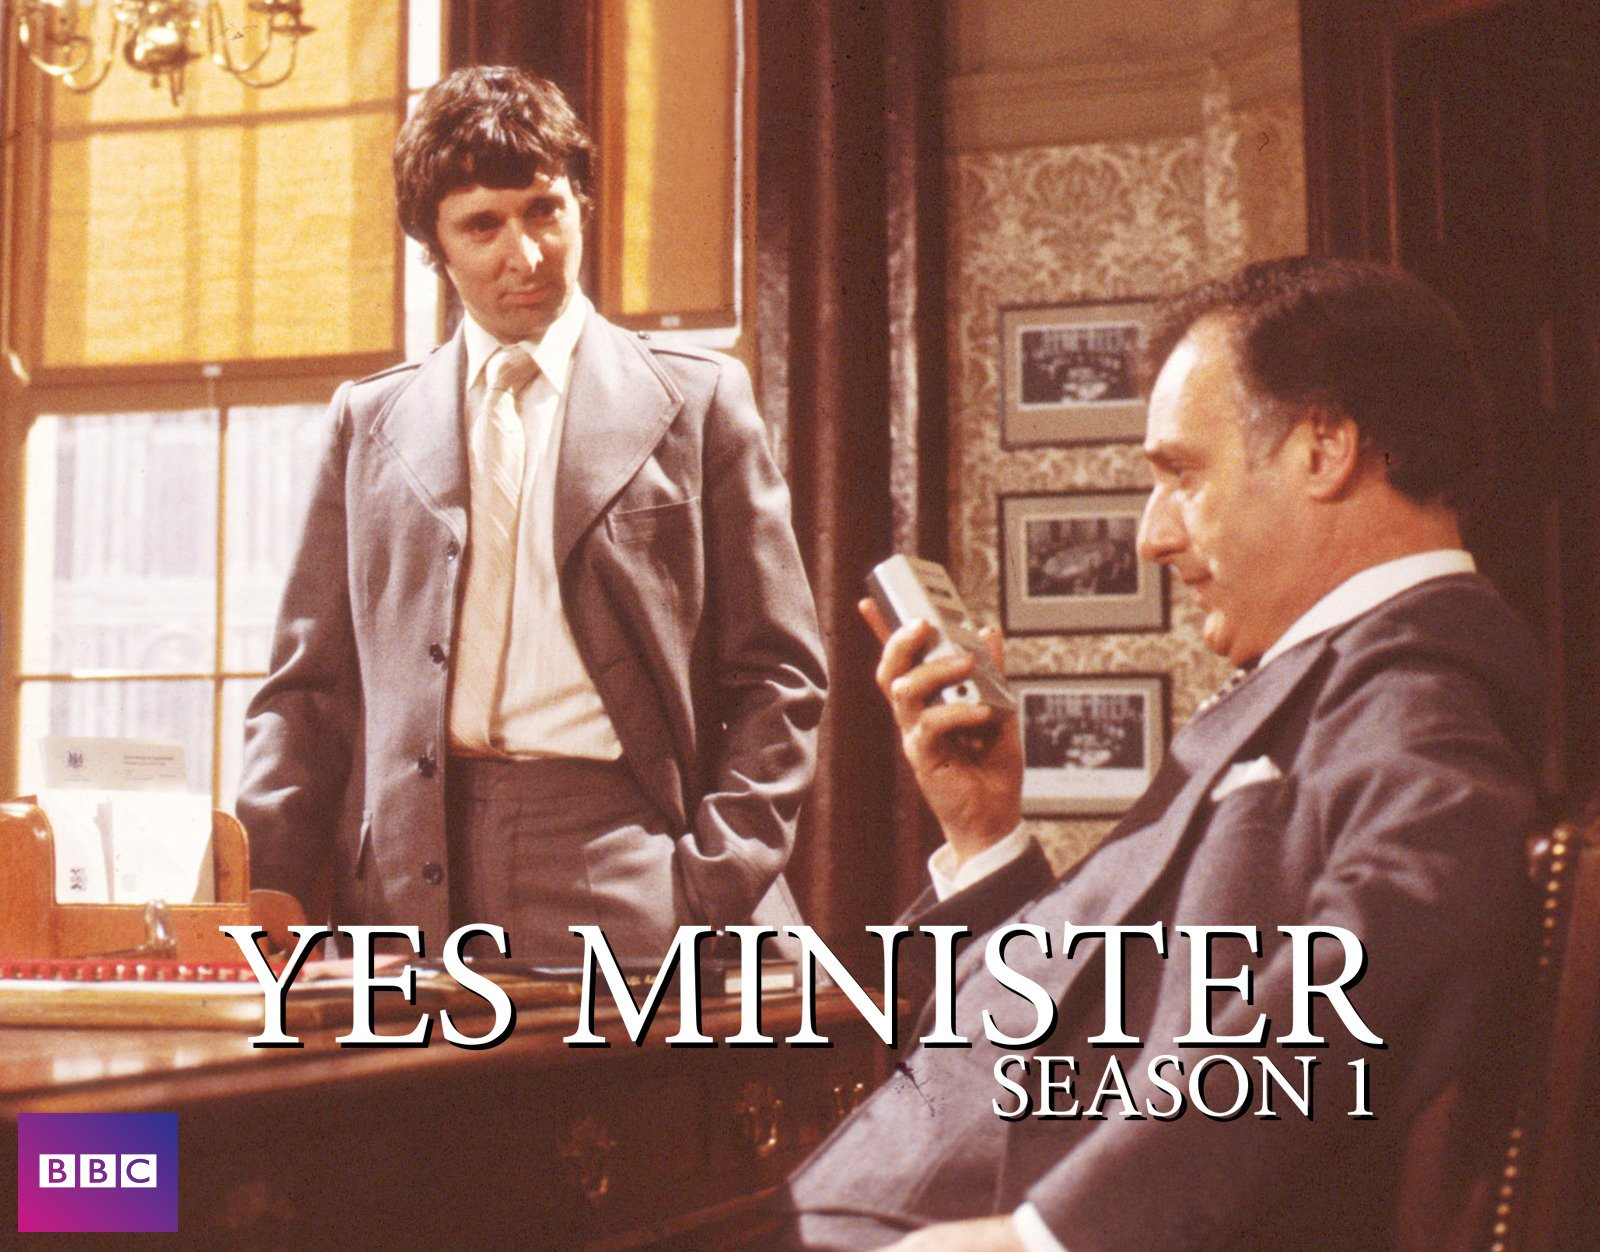 Book yes pdf minister